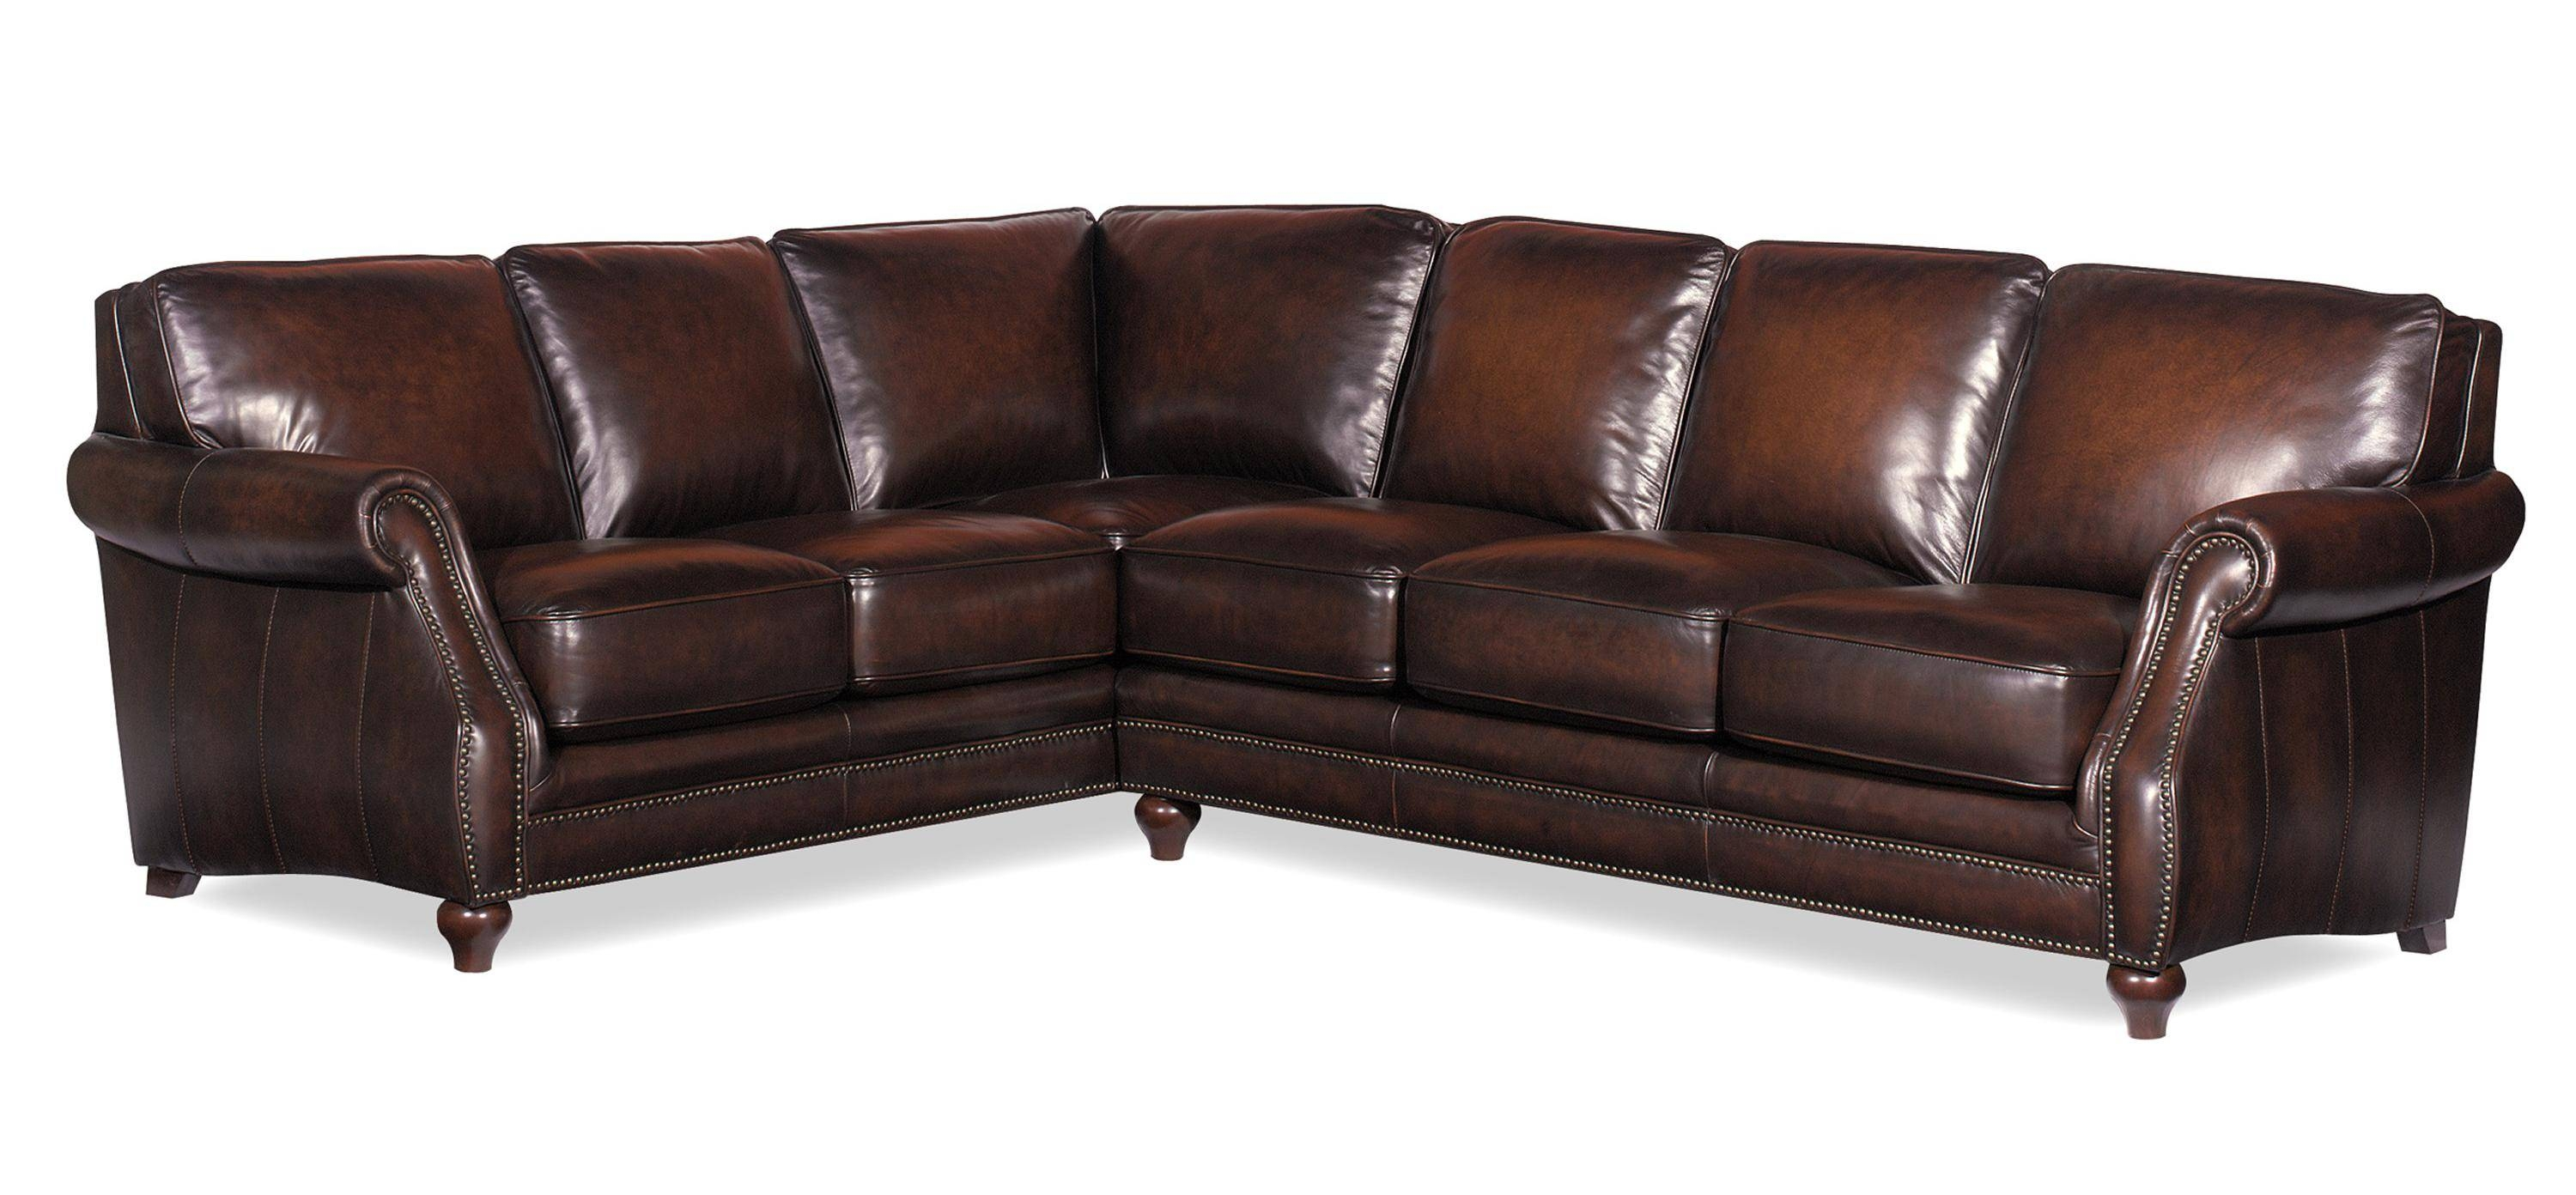 Craftmaster L121500 Traditional Two Piece Leather Sectional Sofa throughout Traditional Leather Sectional Sofas (Image 6 of 15)